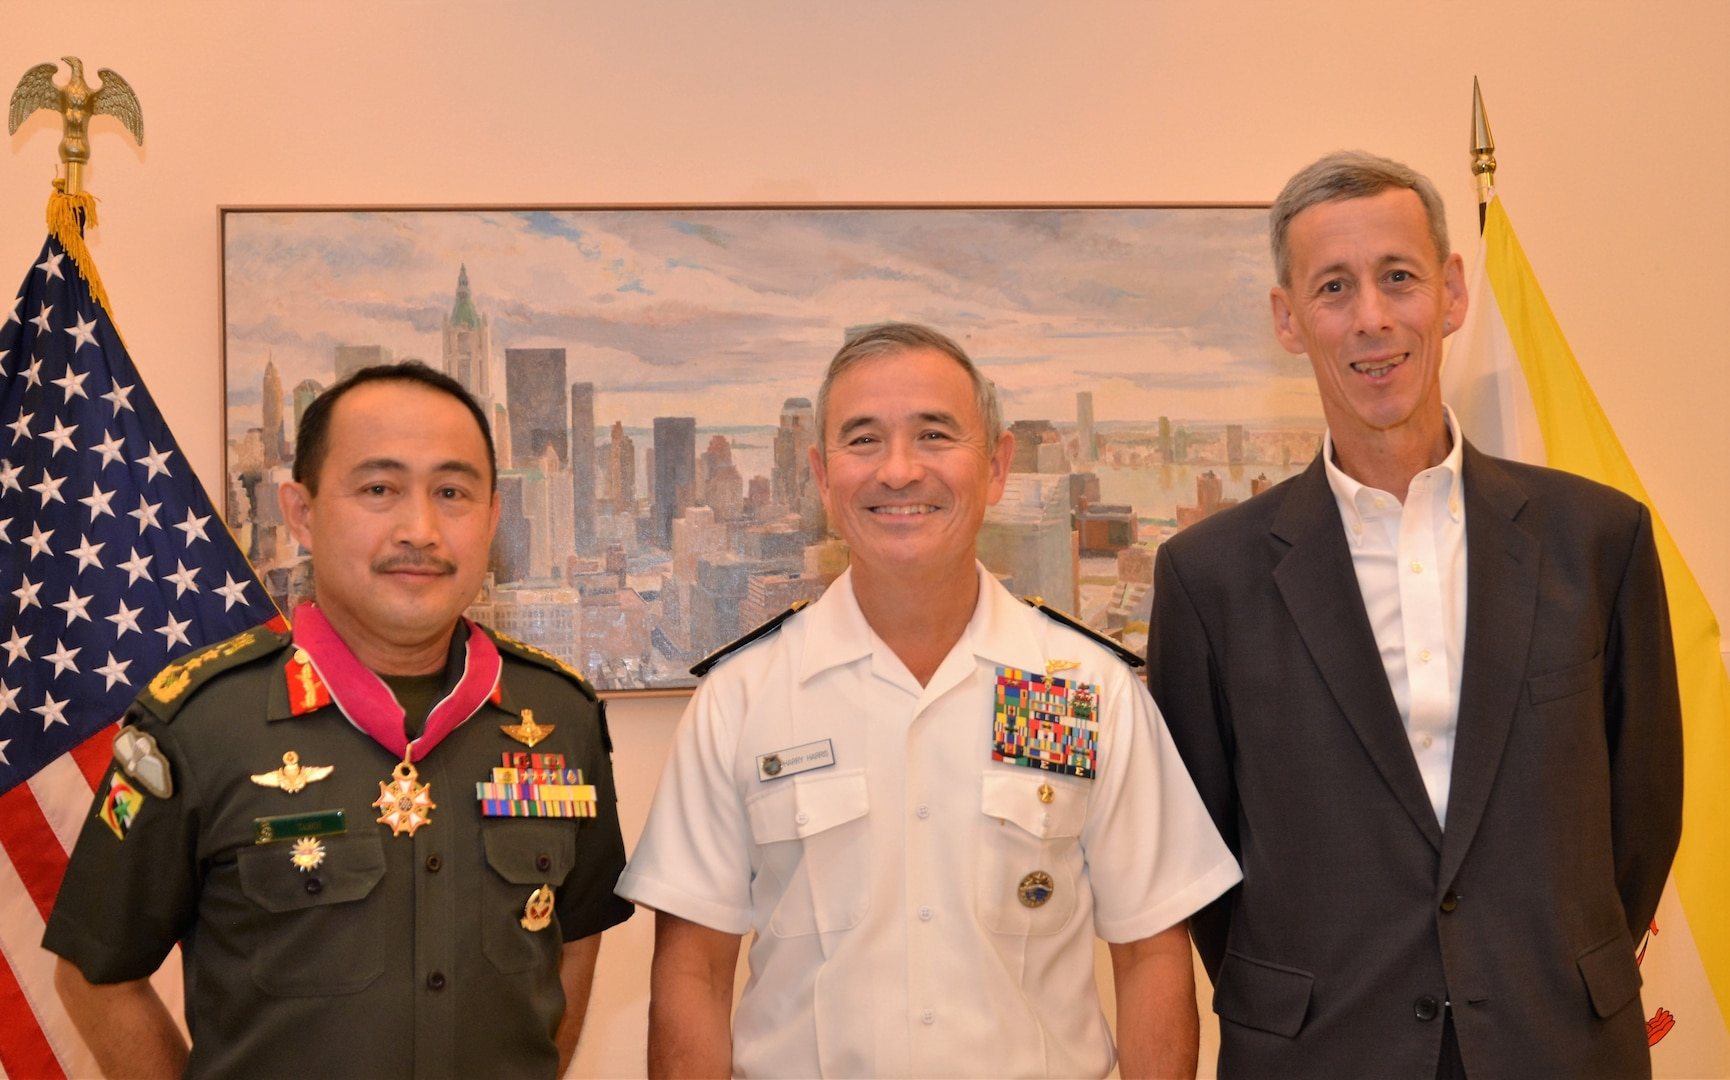 Admiral Harry B. Harris, Jr, Commander, U.S. Pacific Command, presents the Legion of Merit to Pehin Datu Pekerma Jaya Major General Dato Paduka Seri Mohd Tawih bin Abdullah, former Commander, Royal Brunei Armed Forces, at a special event hosted at the residence of U.S. Ambassador to Brunei Craig Allen. Adm. Harris is visiting Brunei to further meaningful engagement on economic and security cooperation with the sultanate. The United States and Brunei have benefited from a mutual friendship since 1850, and a security partnership since 1994.